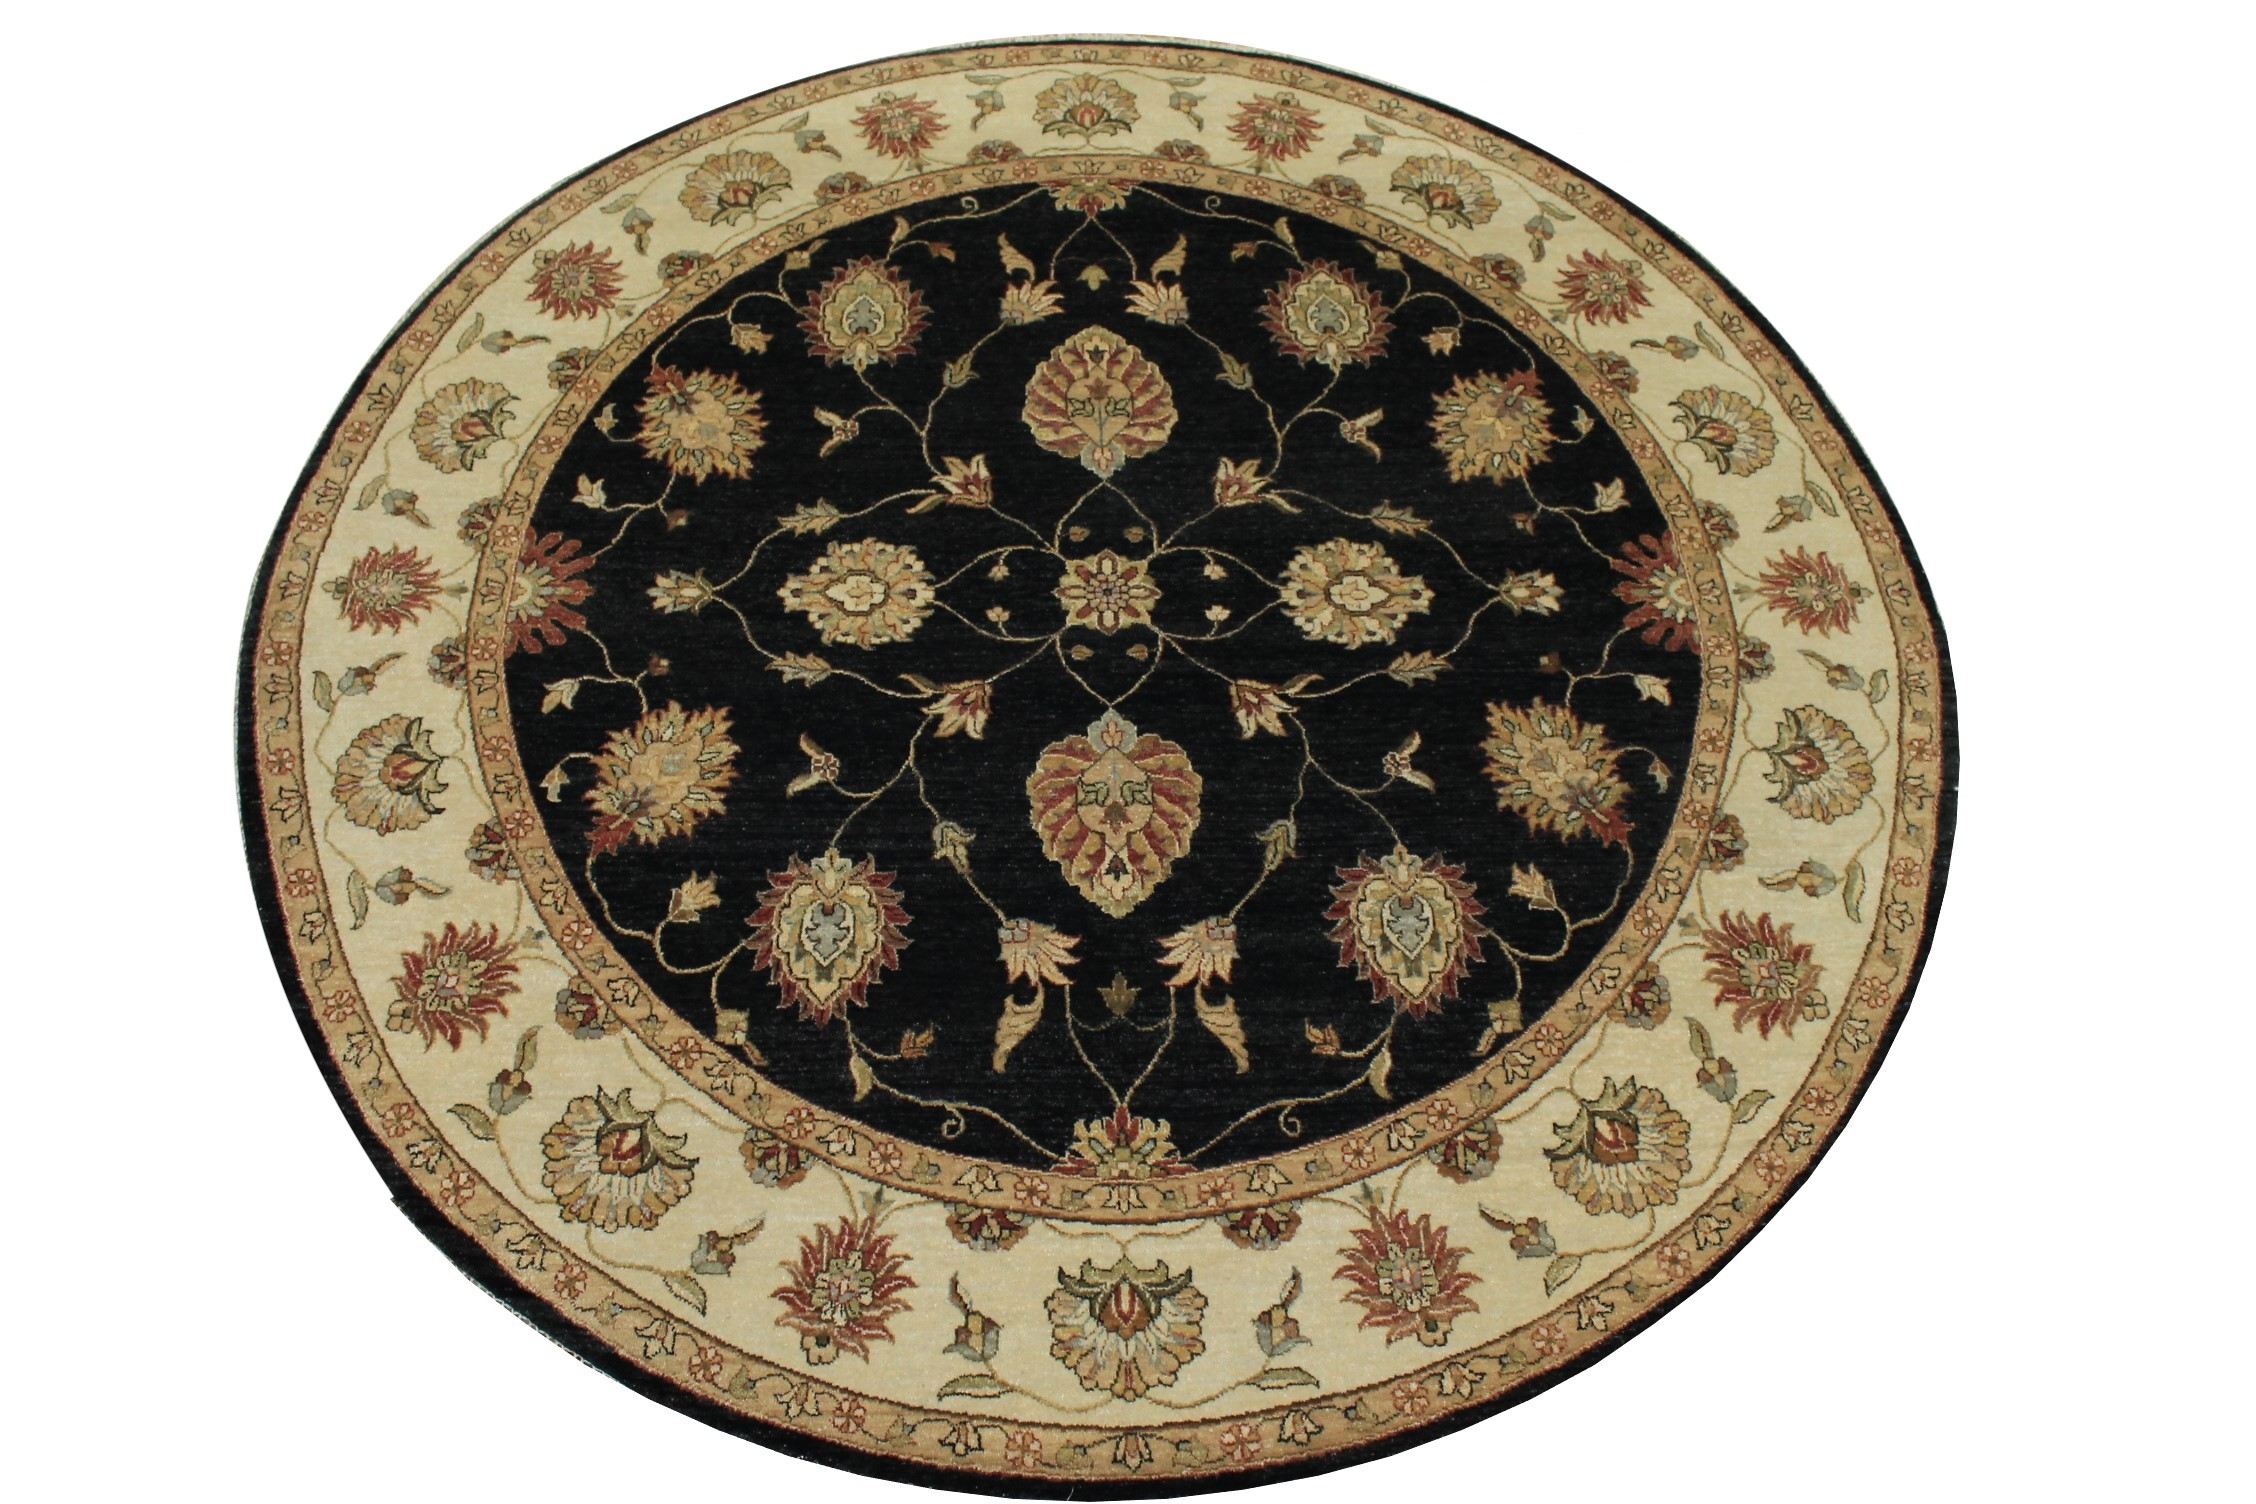 8 ft. Round & Square Traditional Hand Knotted Wool Area Rug - MR12218